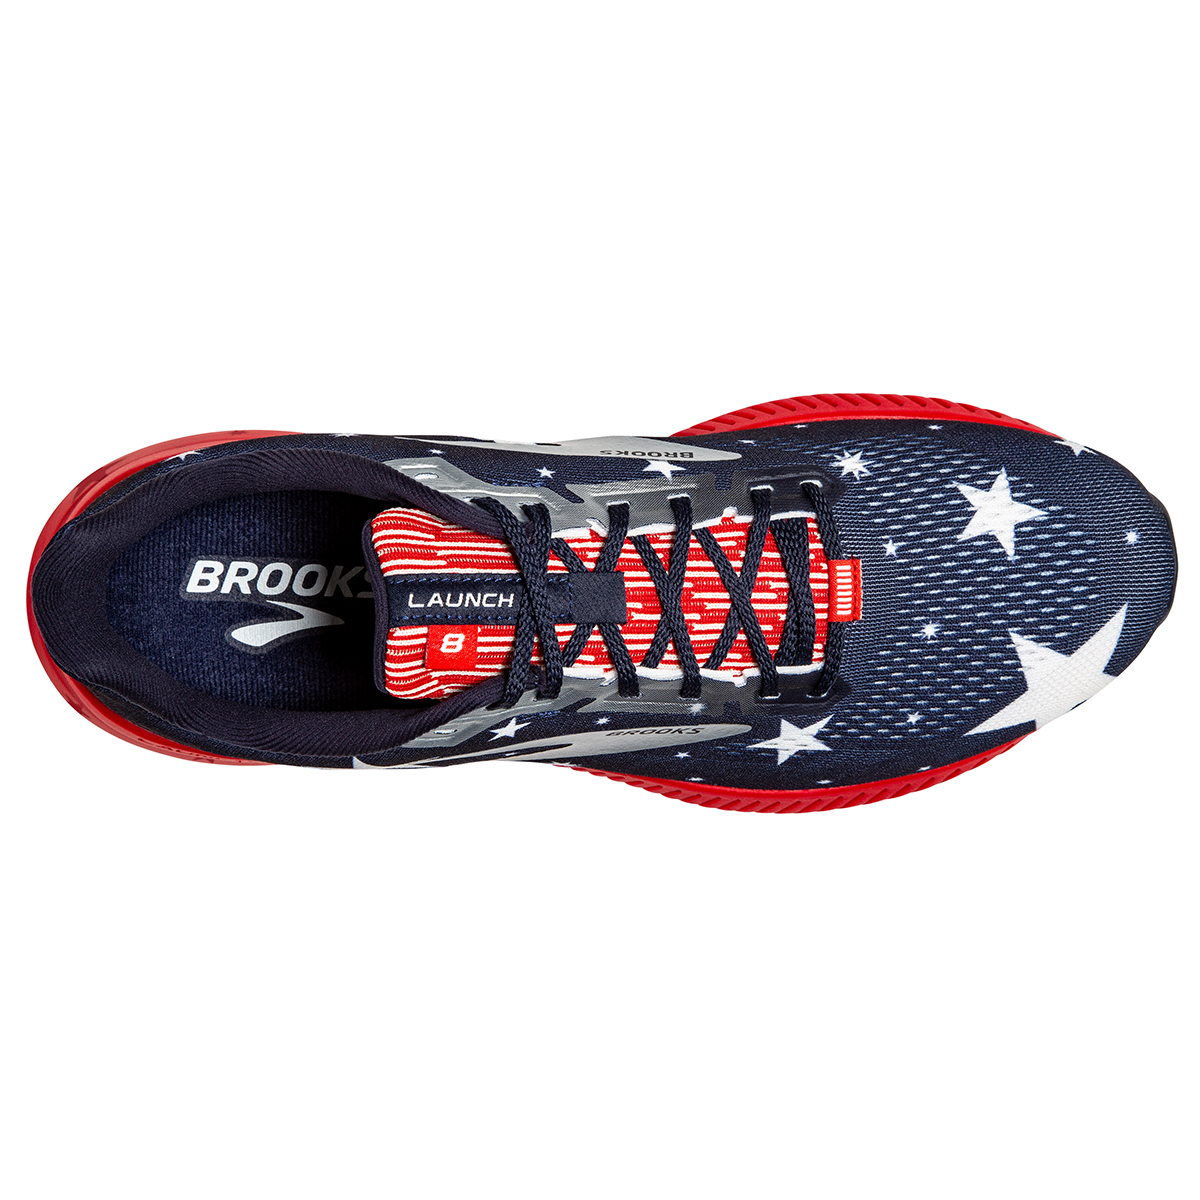 Men's Brooks Launch 8 Running Shoe - Color: Blue/Red/Silver - Size: 7 - Width: Regular, Blue/Red/Silver, large, image 6